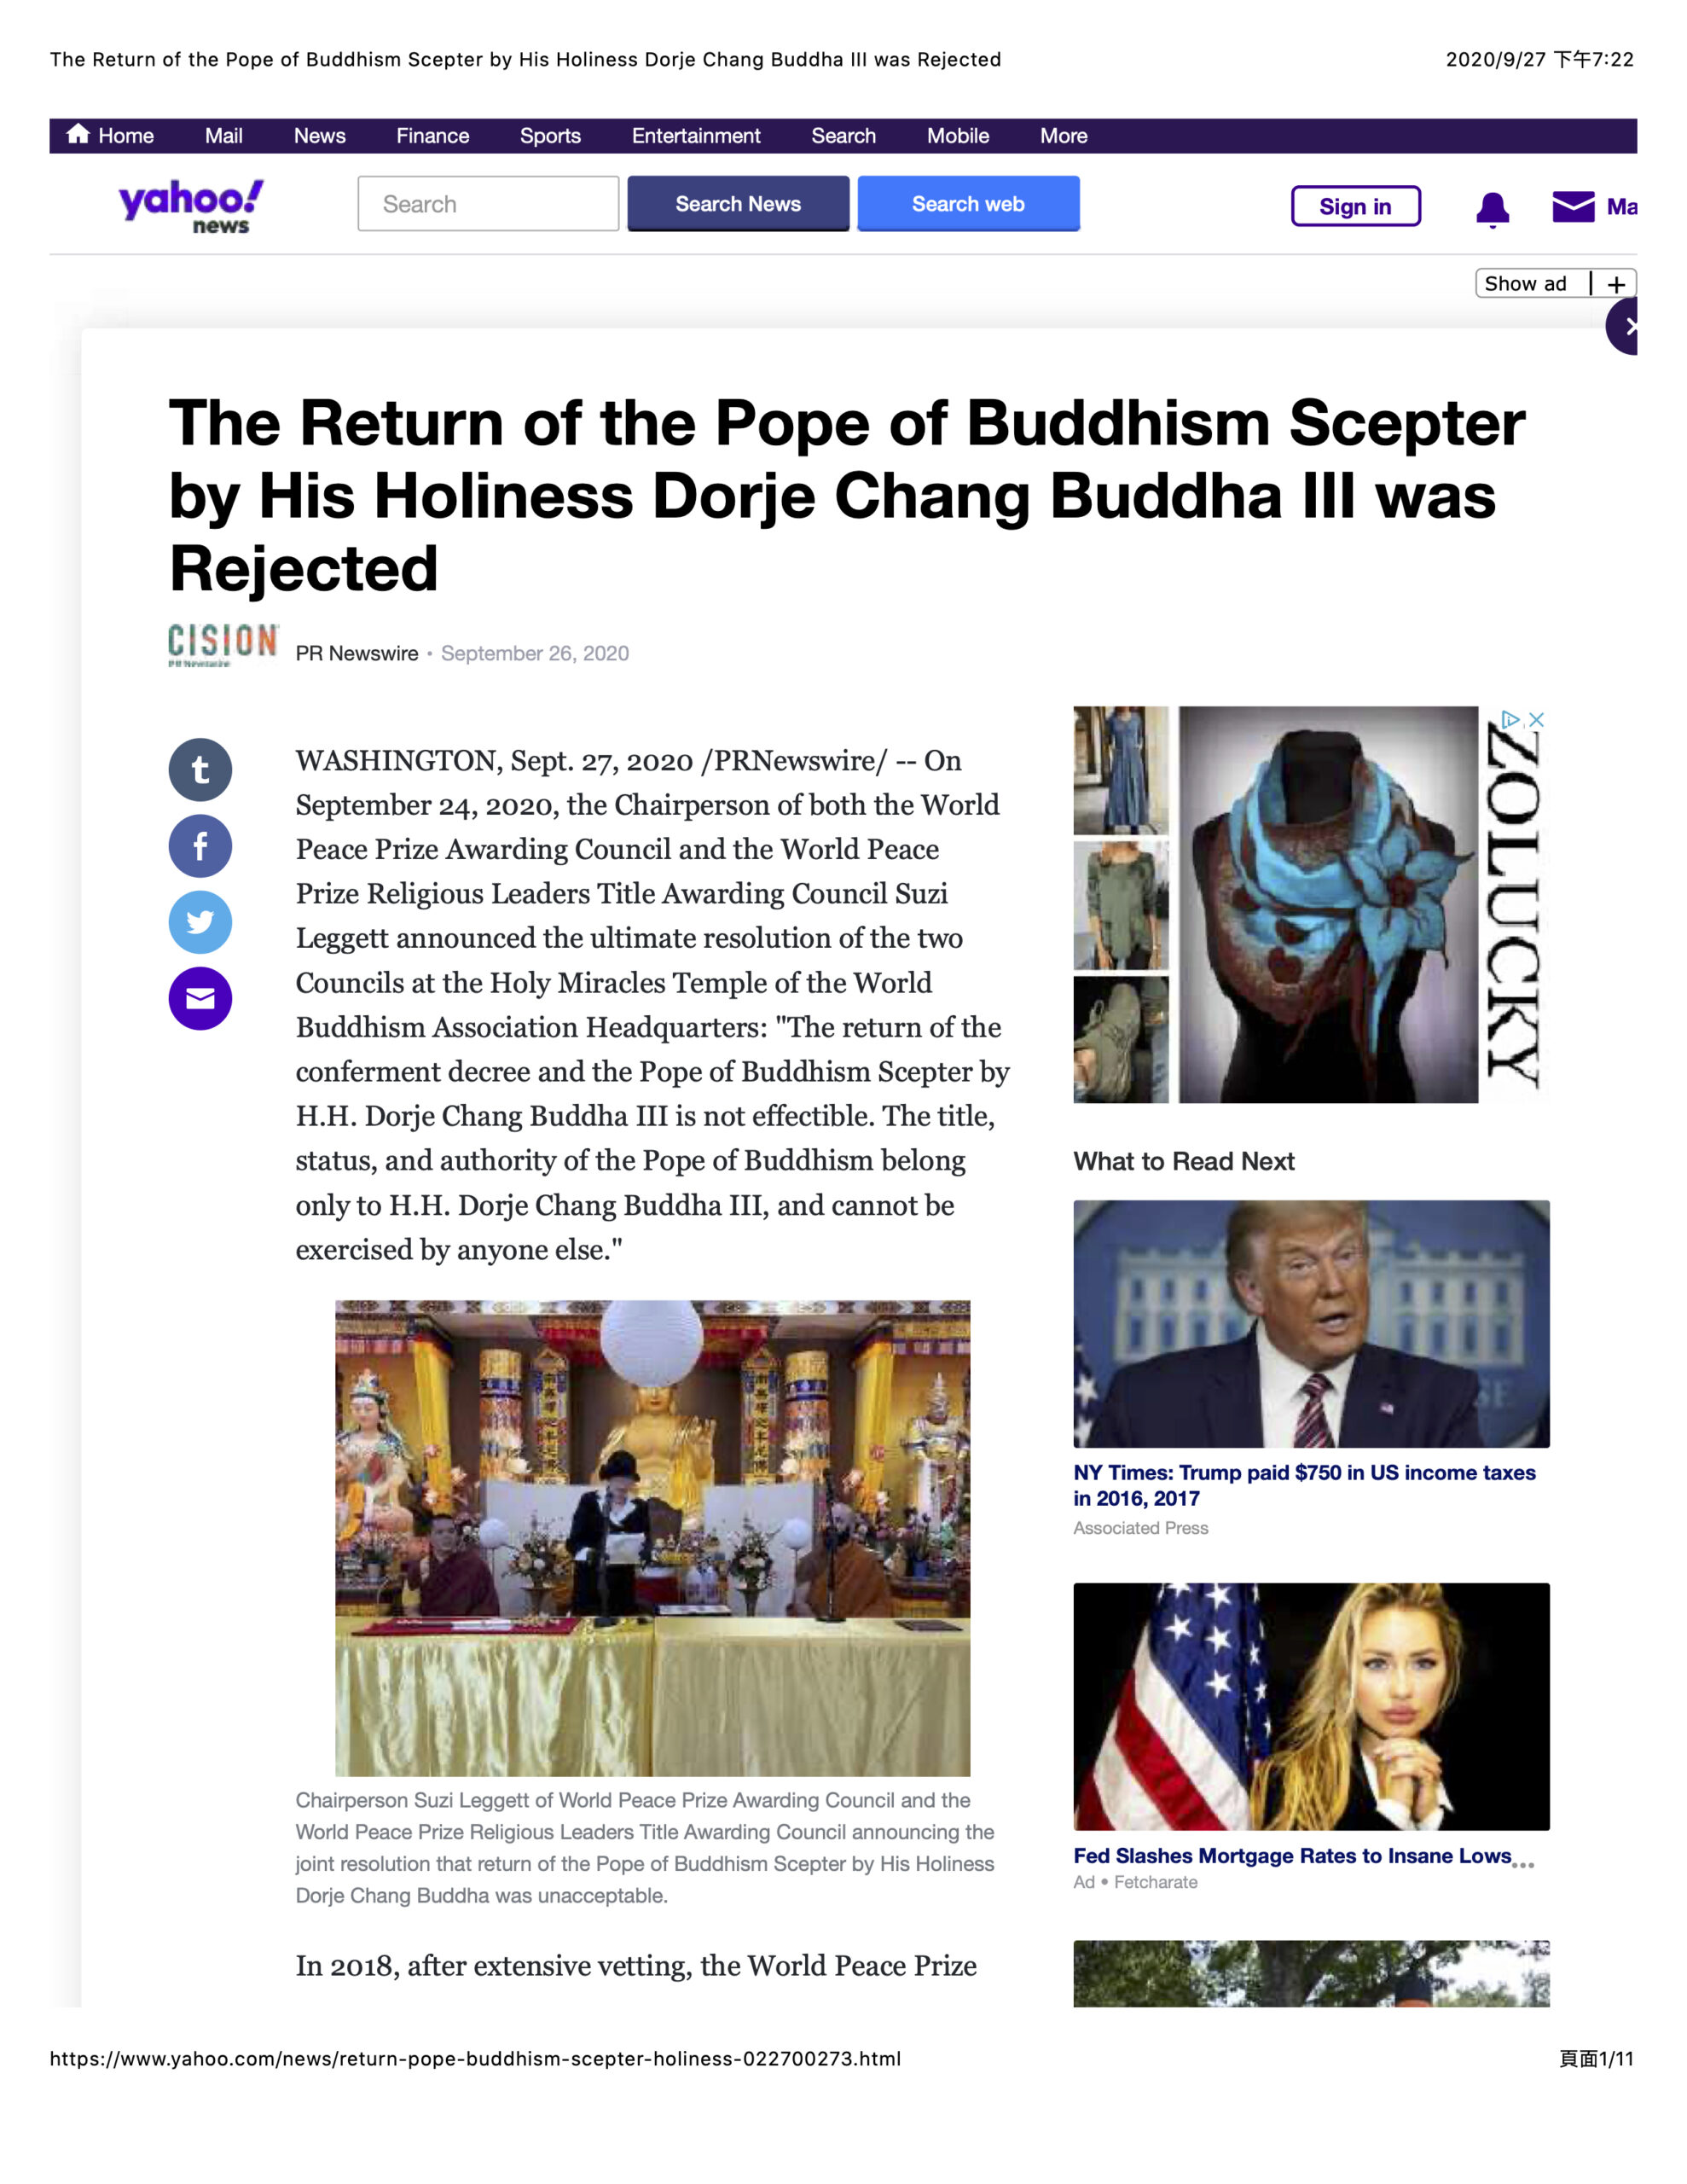 4-1. Yahoo News 雅虎新聞_The Return of the Pope of Buddhism Scepter_9-27-2020_s